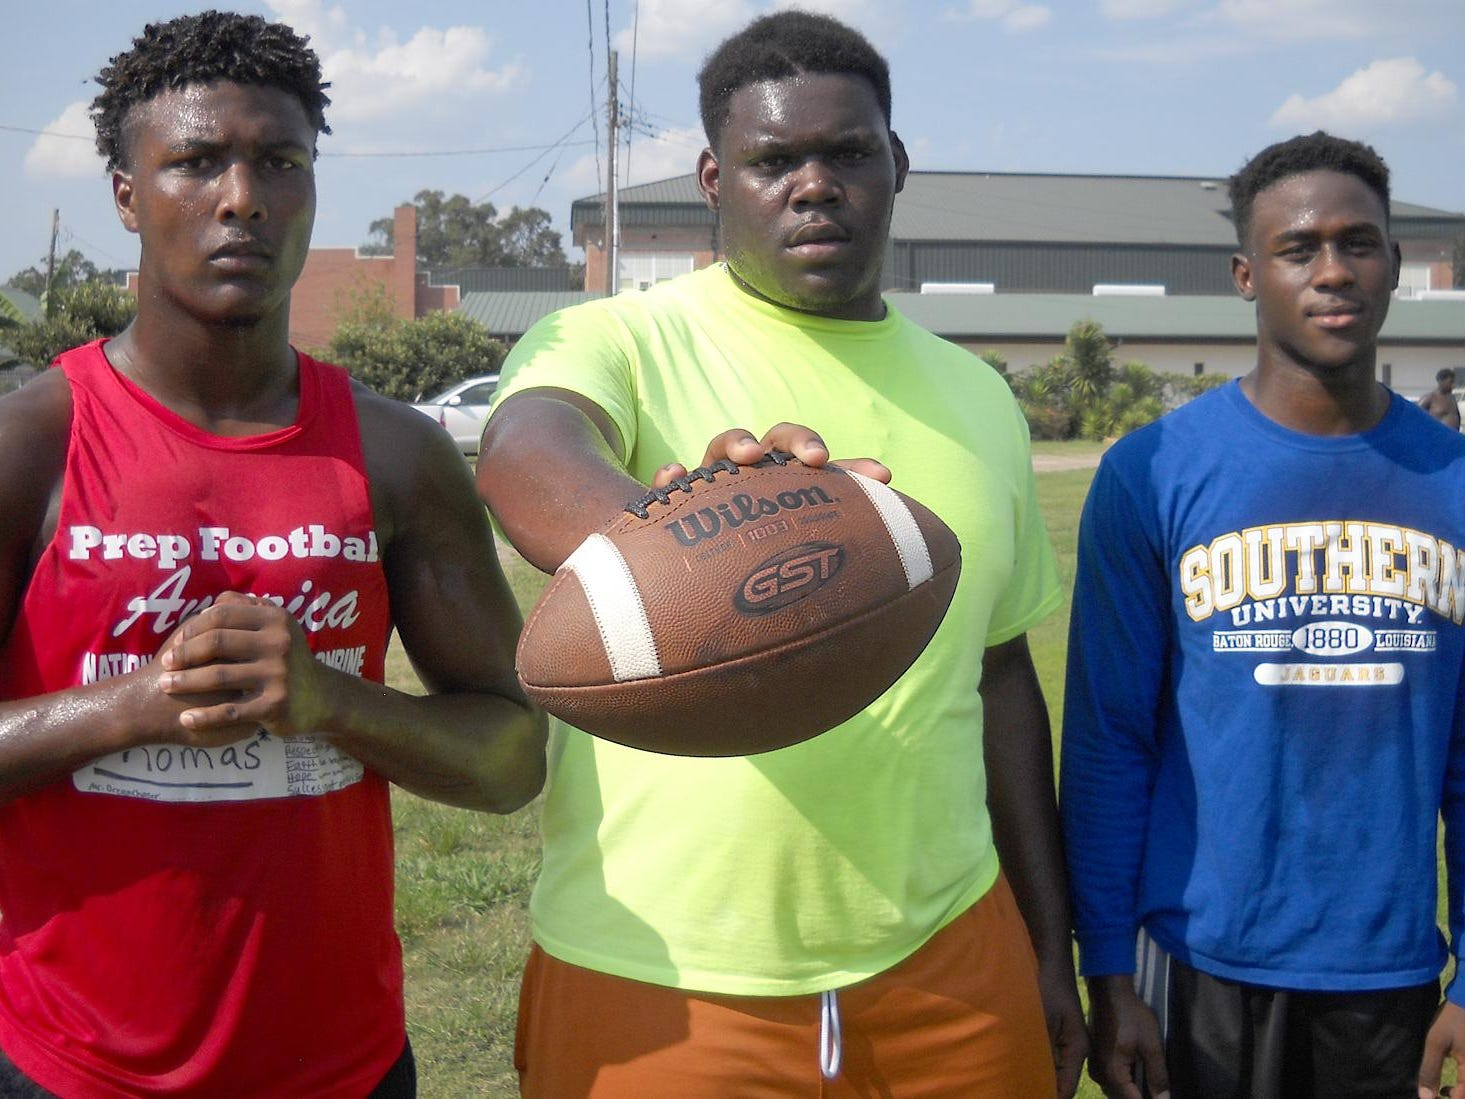 Ville Platte High's Traylon Thomas, Vondarius Freeman and Terez Alfred take a break from the afternoon heat earlier this week during conditioning drills at the Bulldogs' football field. The three Bulldogs' team leaders are expected to help VPHS gain a playoff berth this season in District 5-3A. .